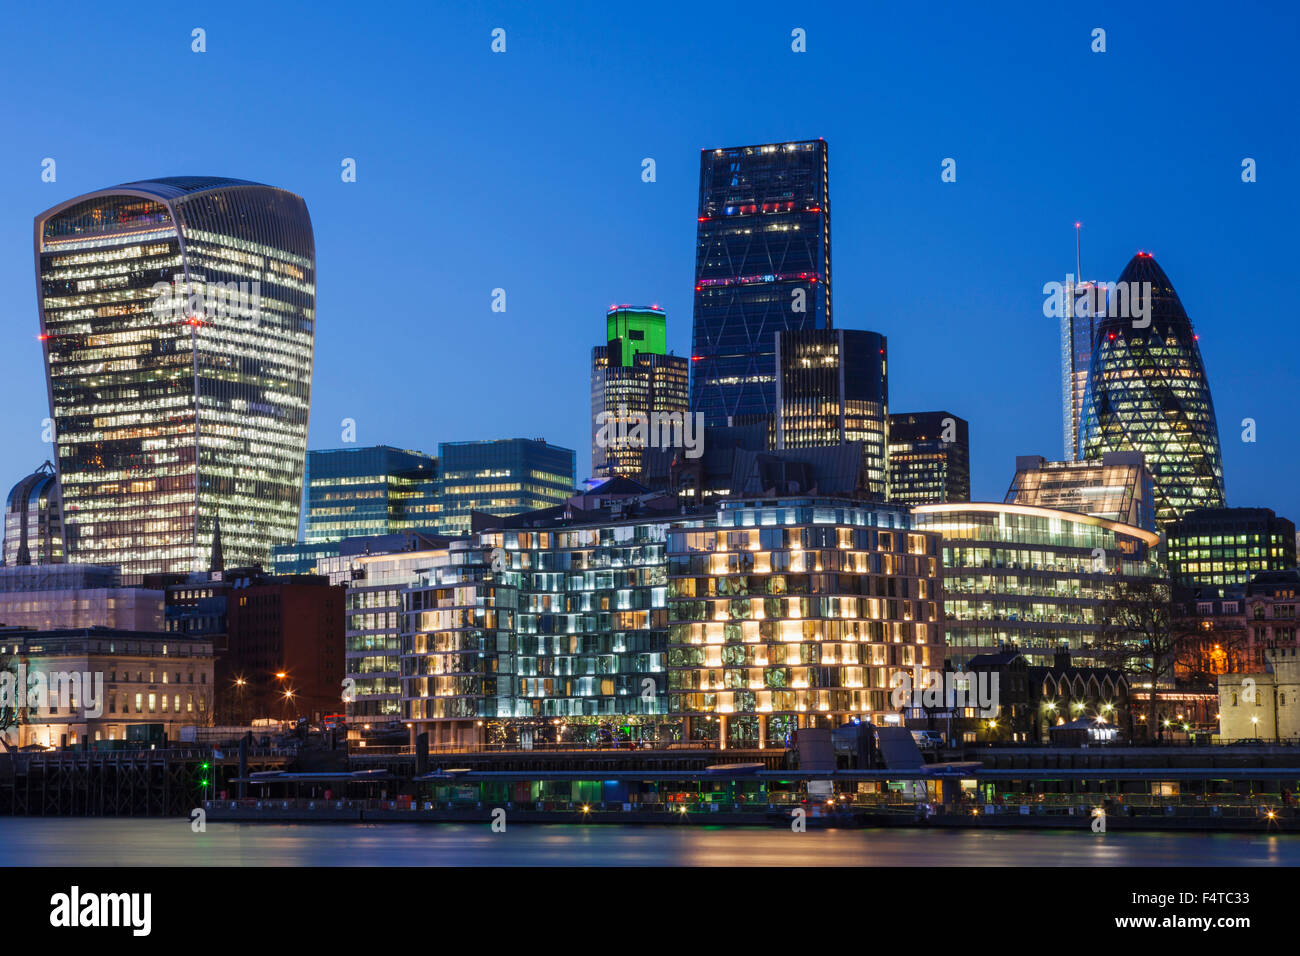 England, London, City, Skyline - Stock Image